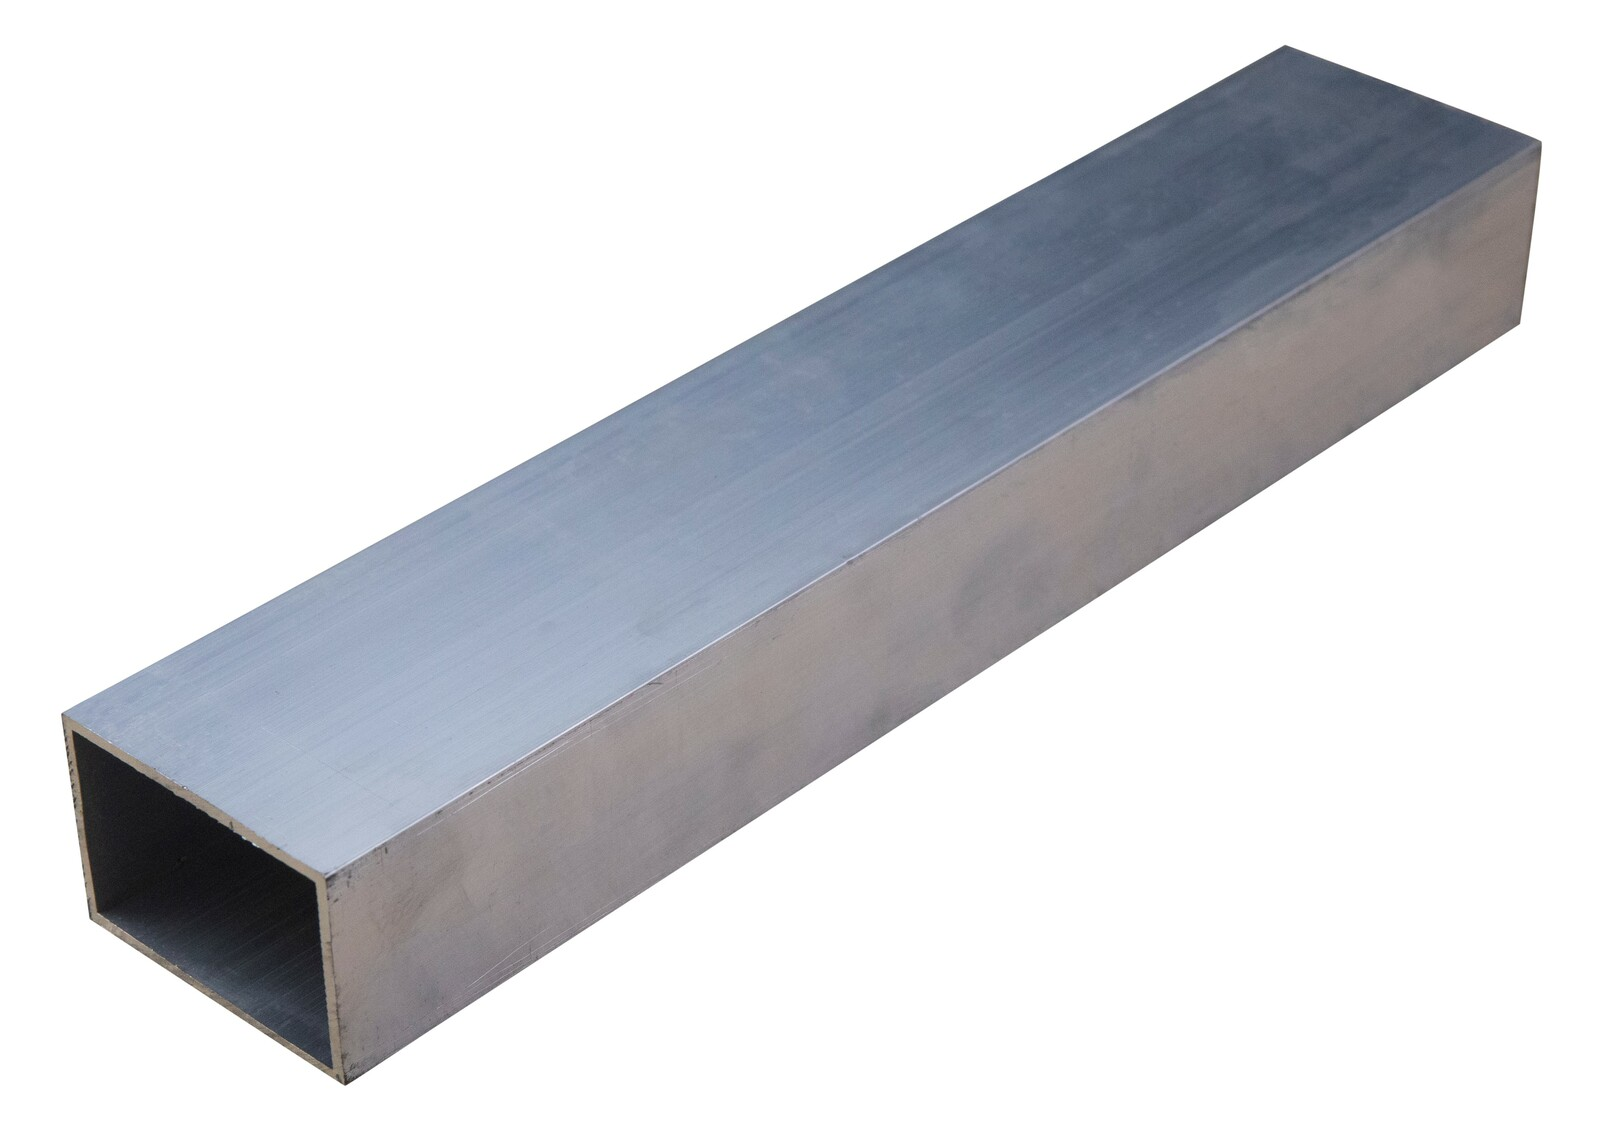 Rectangle 60 x 40 x 6500 Aluminium 2.2mm Thick